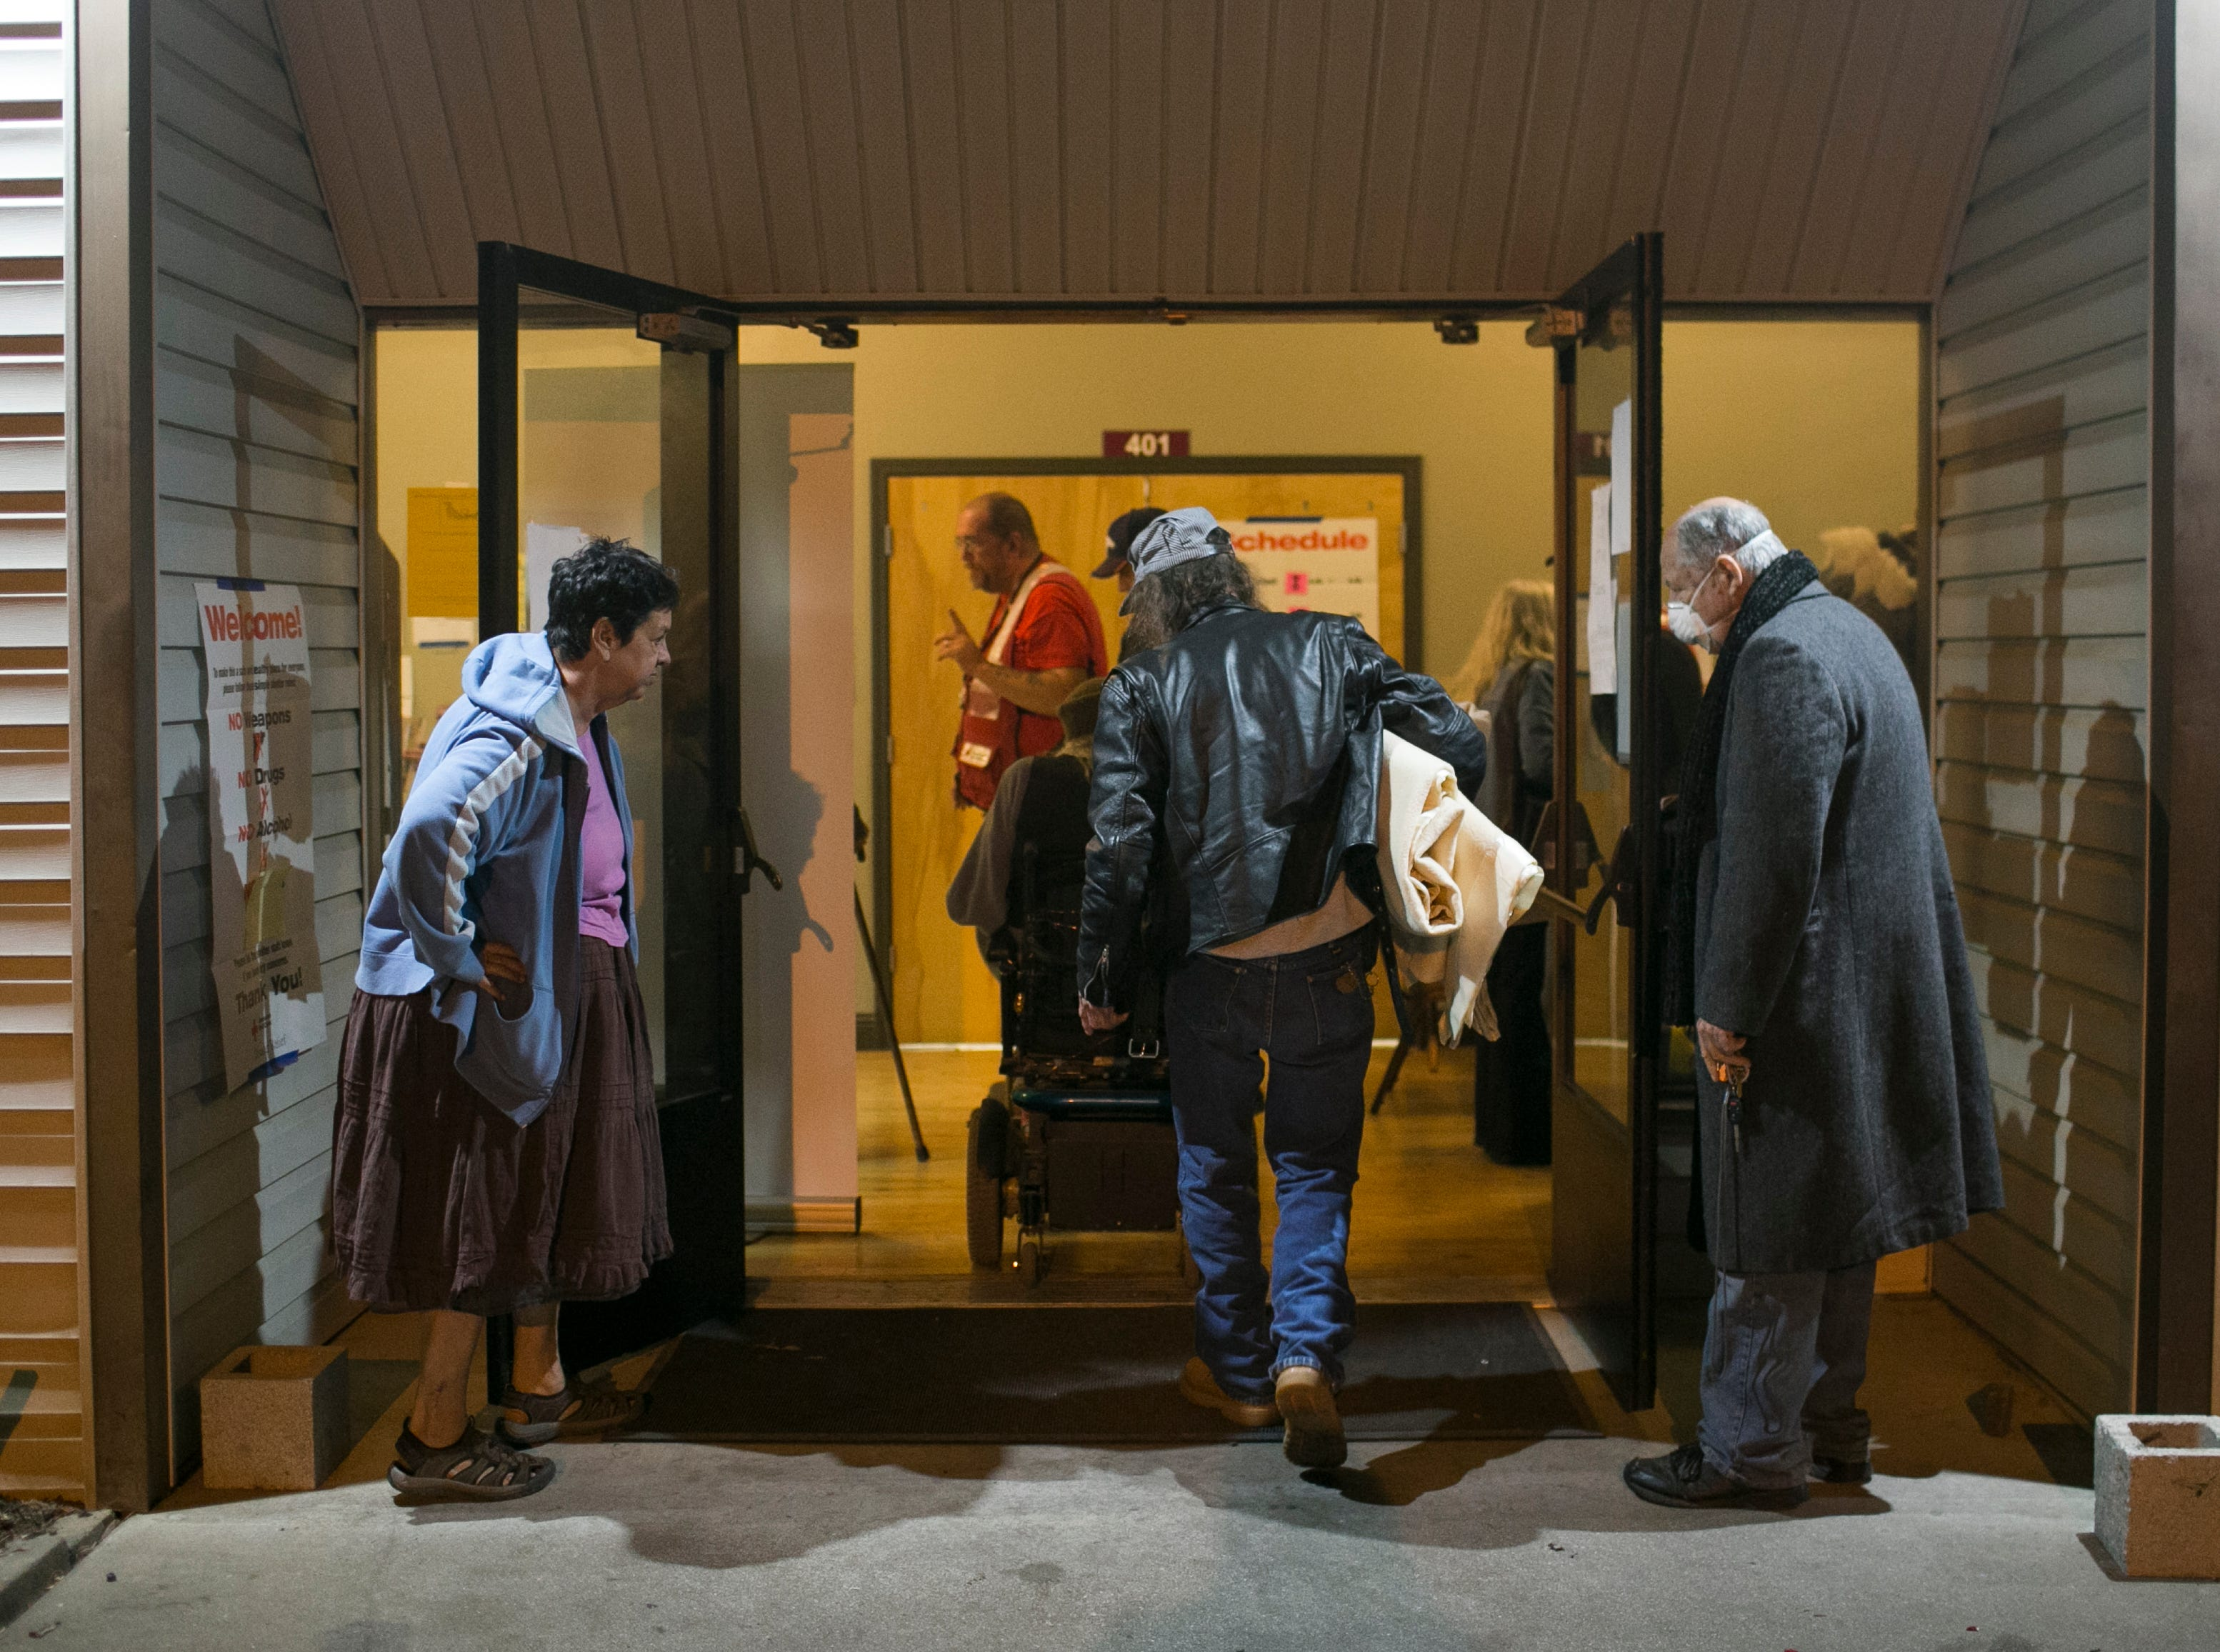 Evacuees walk into the Neighborhood Church Red Cross Shelter in Chico, California on Nov. 14, 2018.